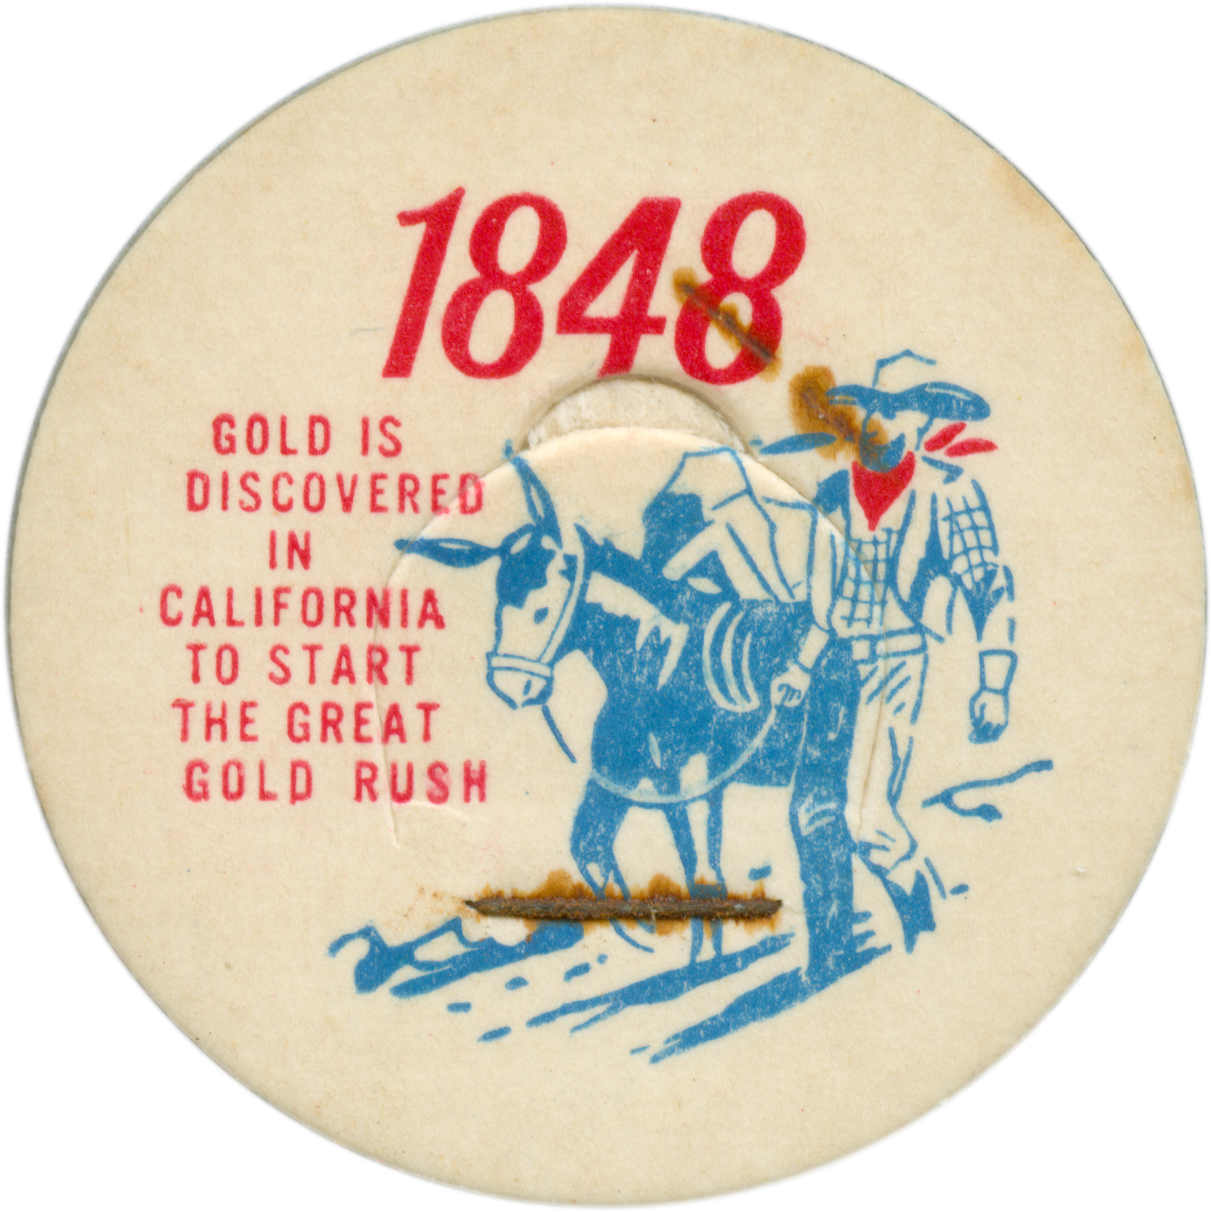 VernacularCircle__0000s_0044_1848---Gold-Discovered-in-California.png